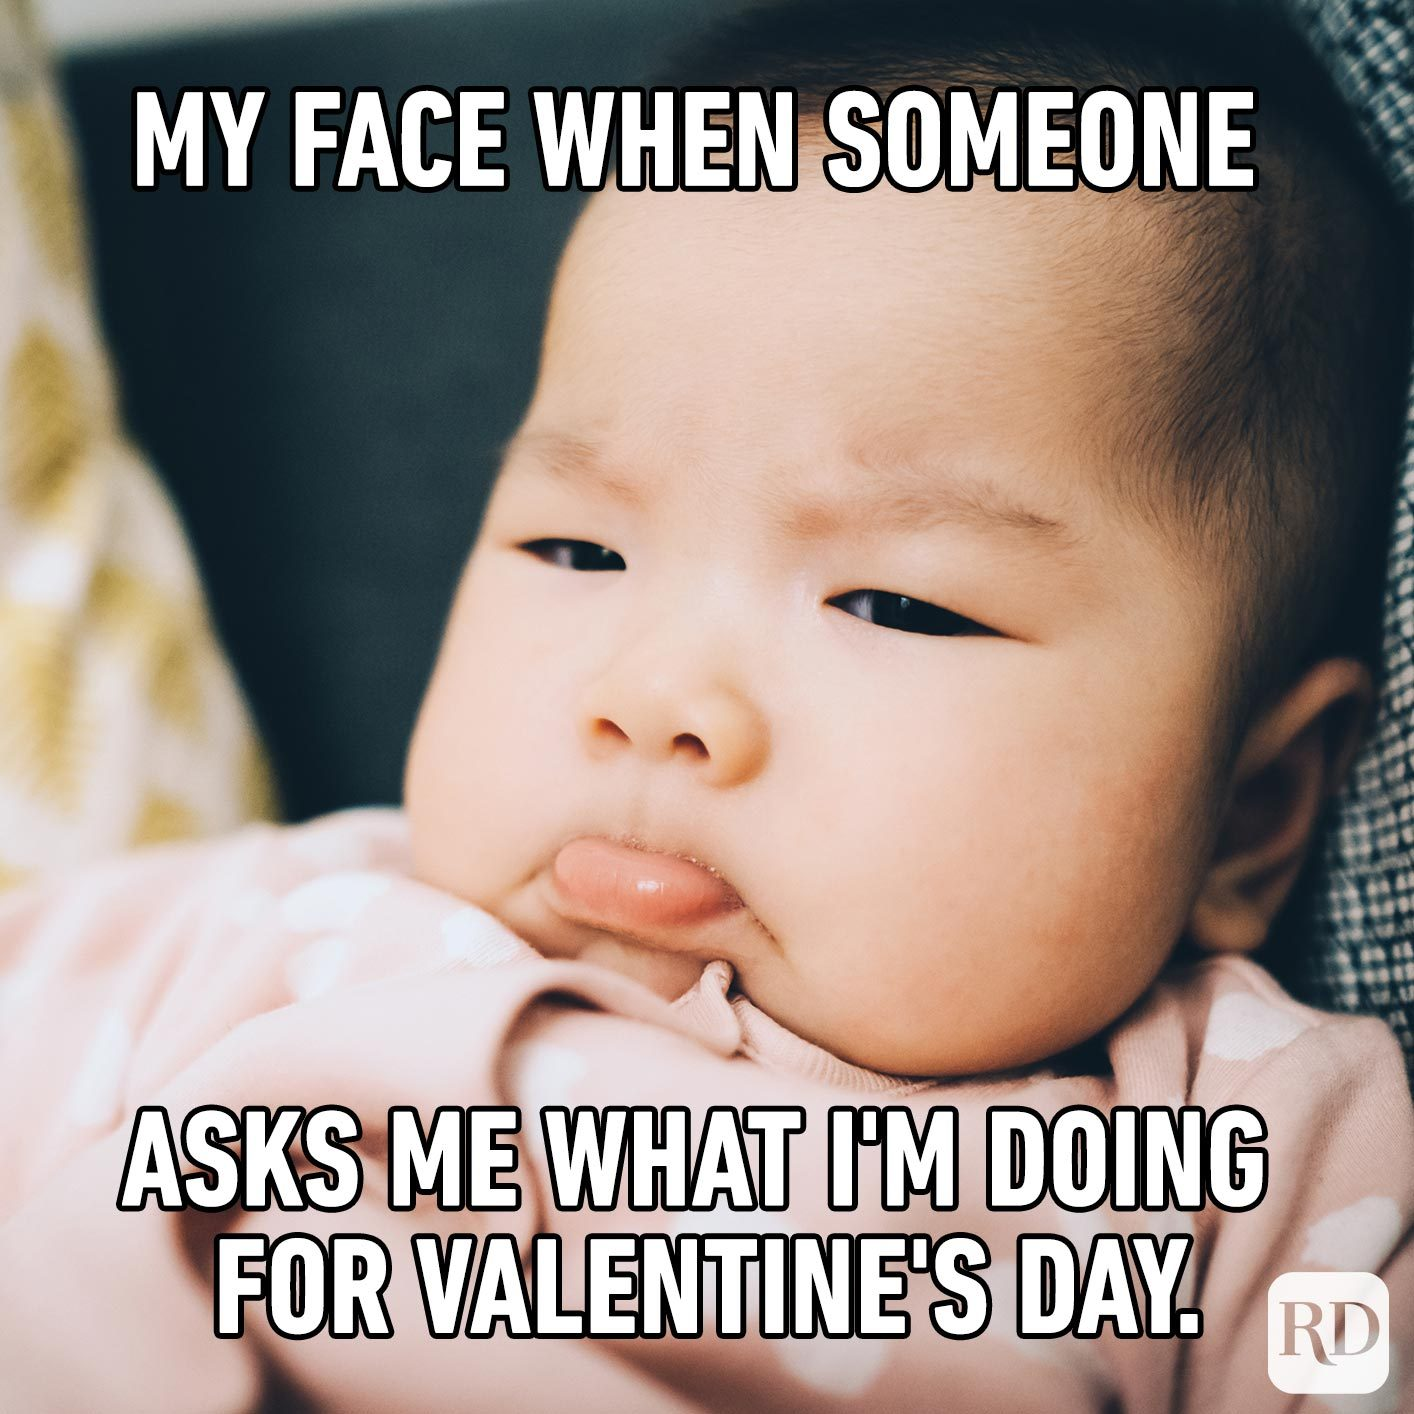 Baby sticking out tongue angrily. Meme text: My face when someone asks me what I'm doing for Valentine's Day.